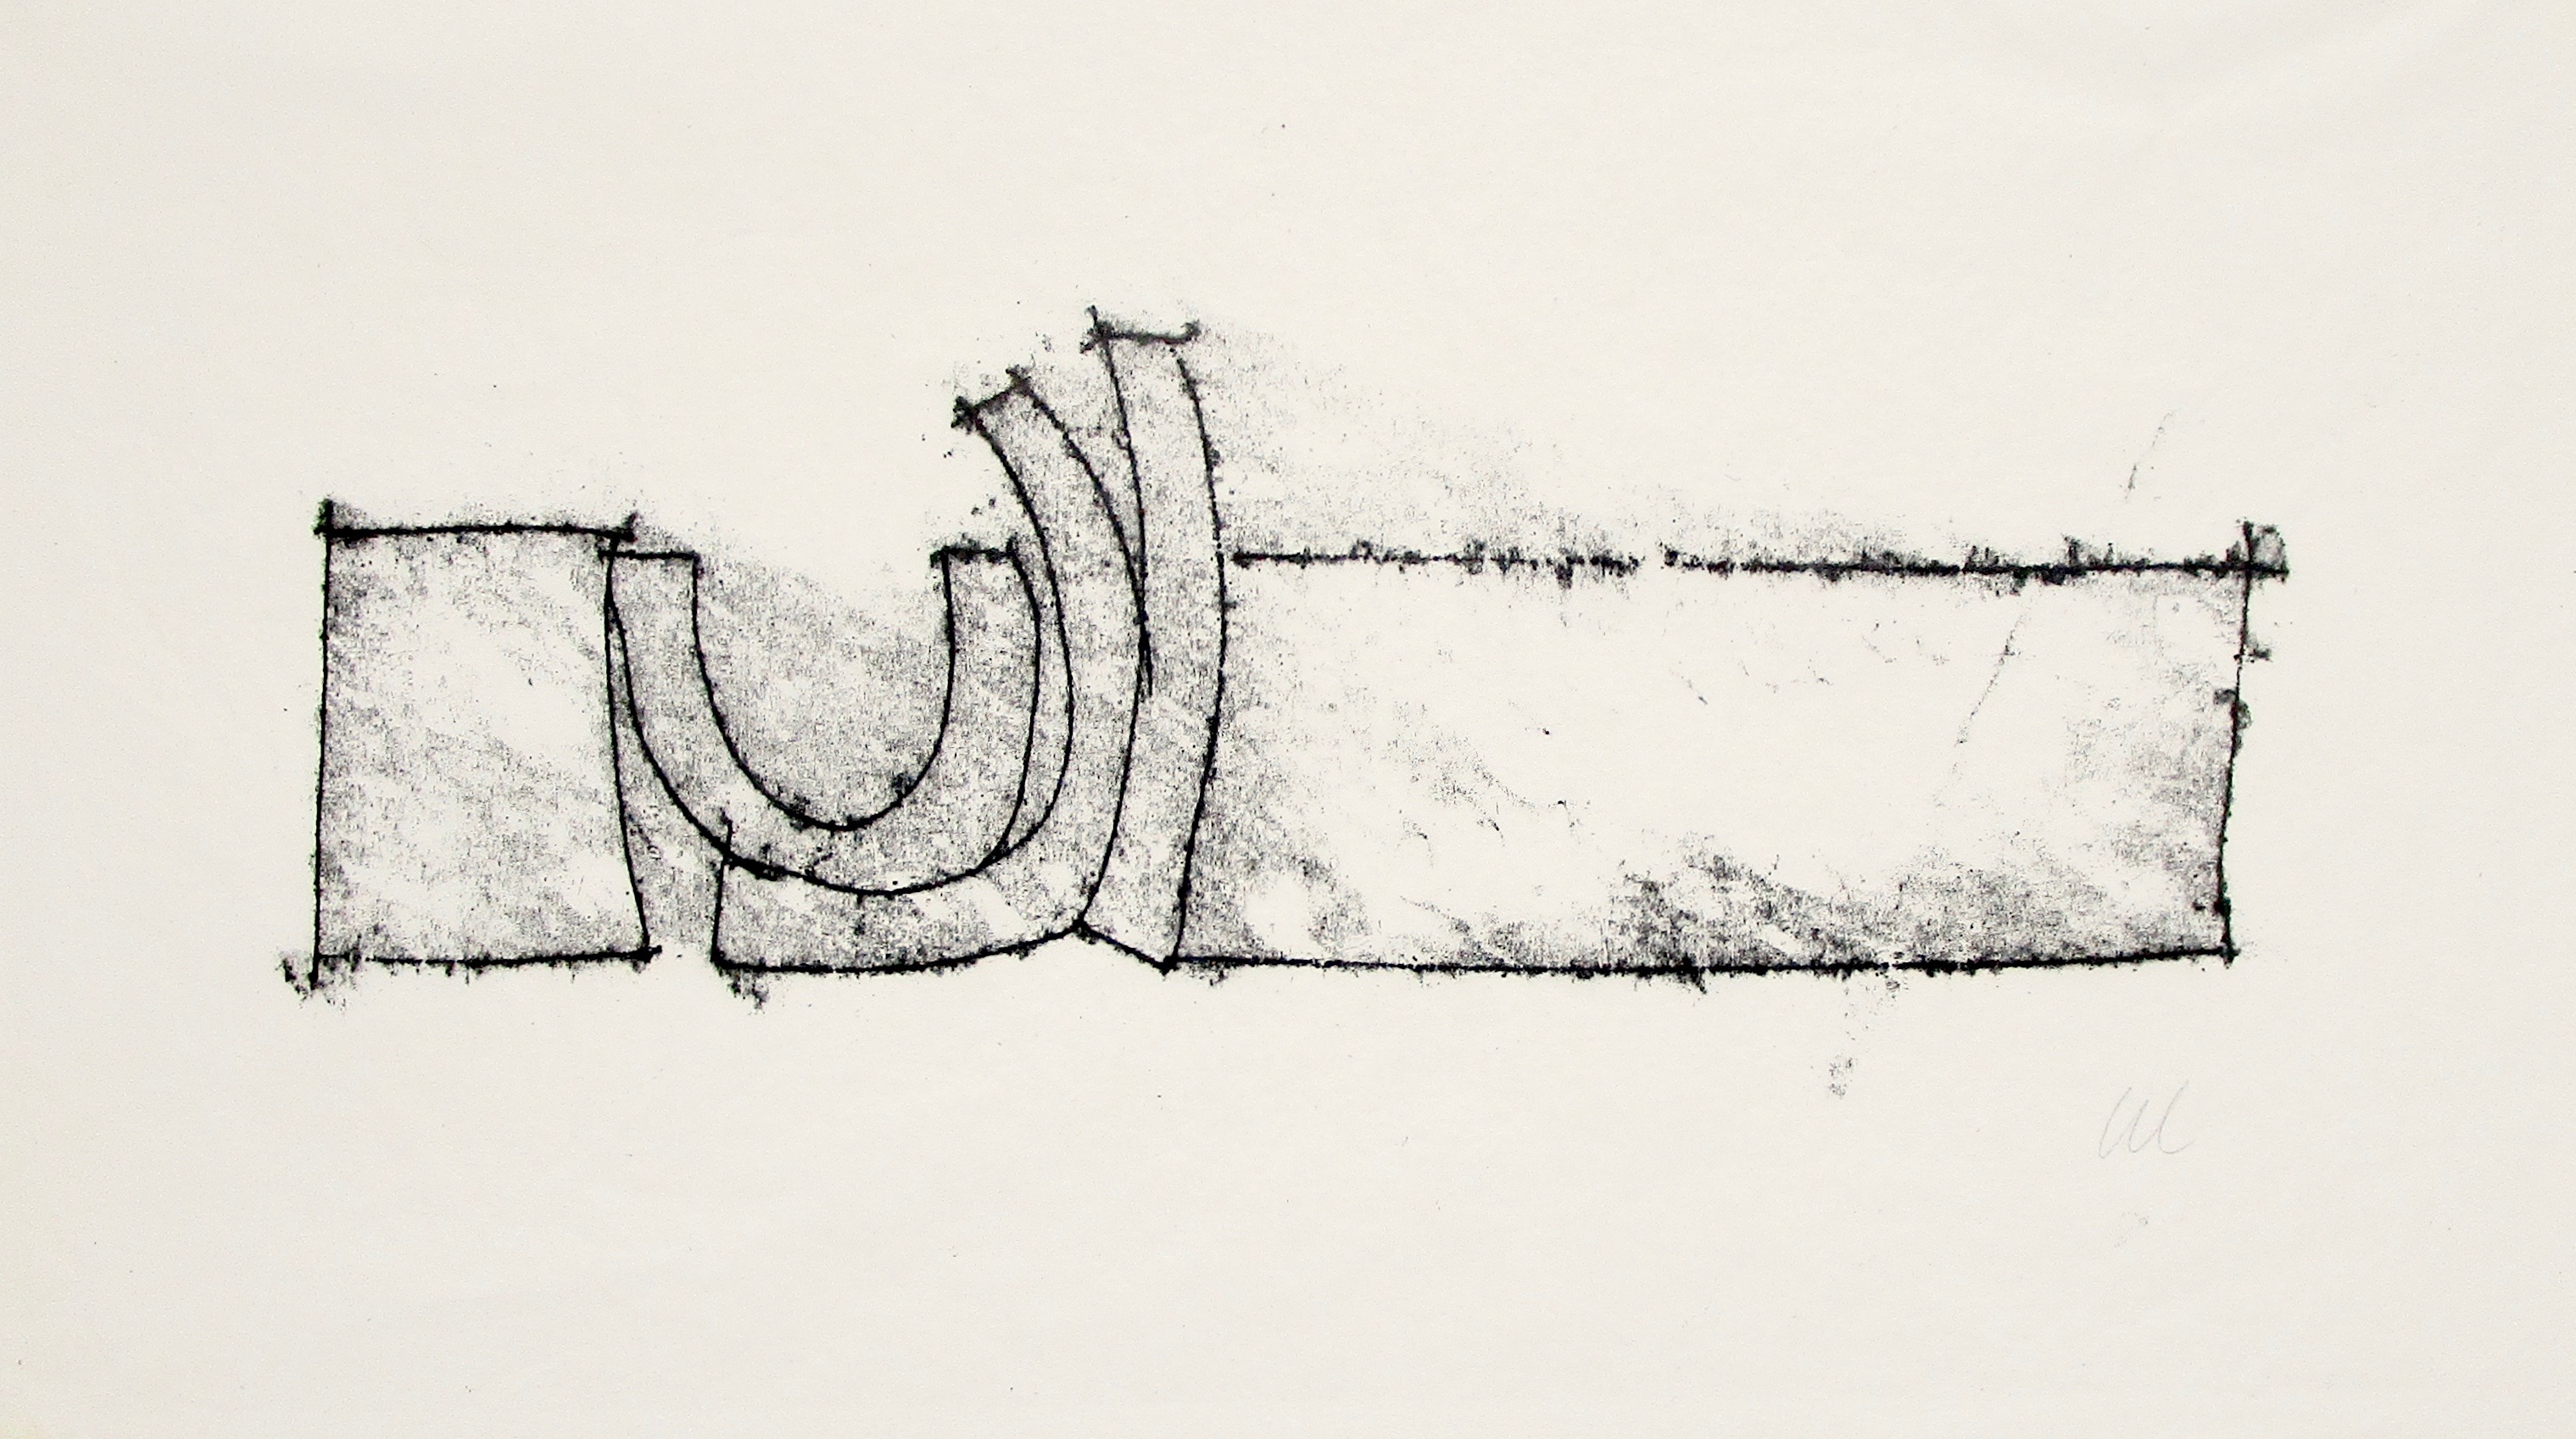 GEOFFREY CLARKE RA [1924-2014]. Untitled [Reclining Form], from the Torii Series 1965. Monotype on